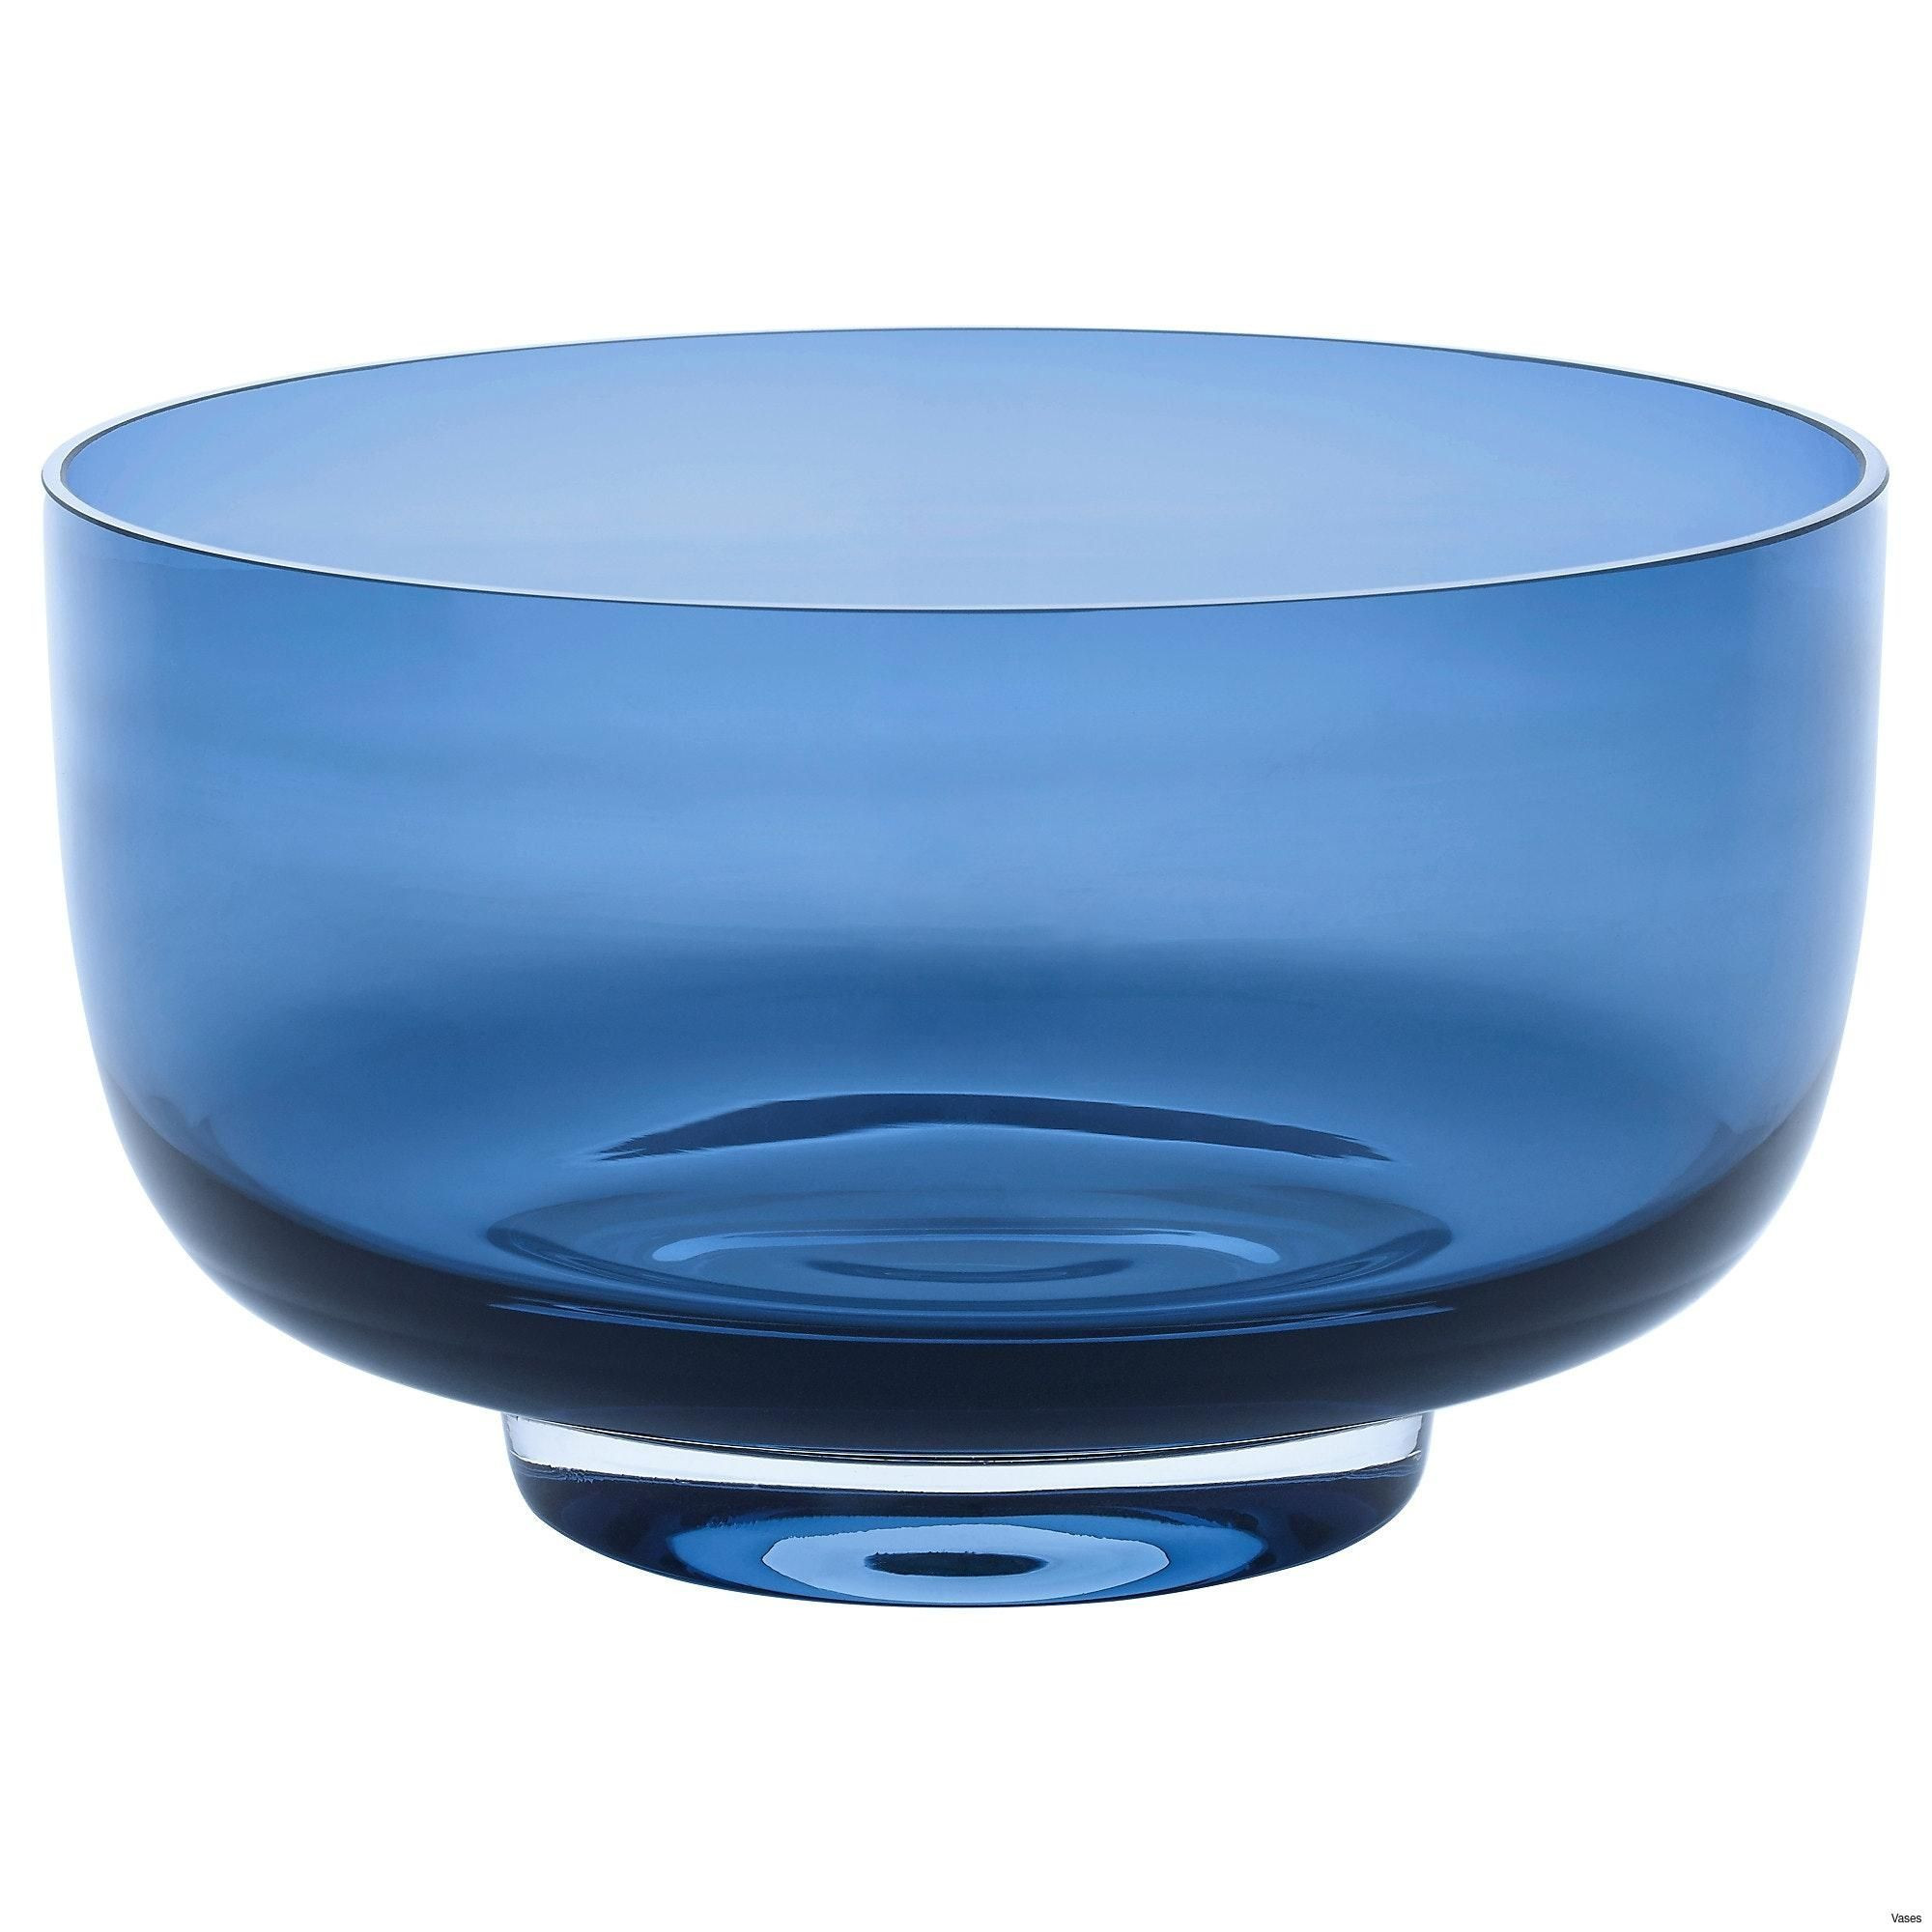 ikea red glass vase of blue crystal vase unique decorative glass bowl new living room ikea throughout blue crystal vase unique decorative glass bowl new living room ikea vases awesome pe s5h